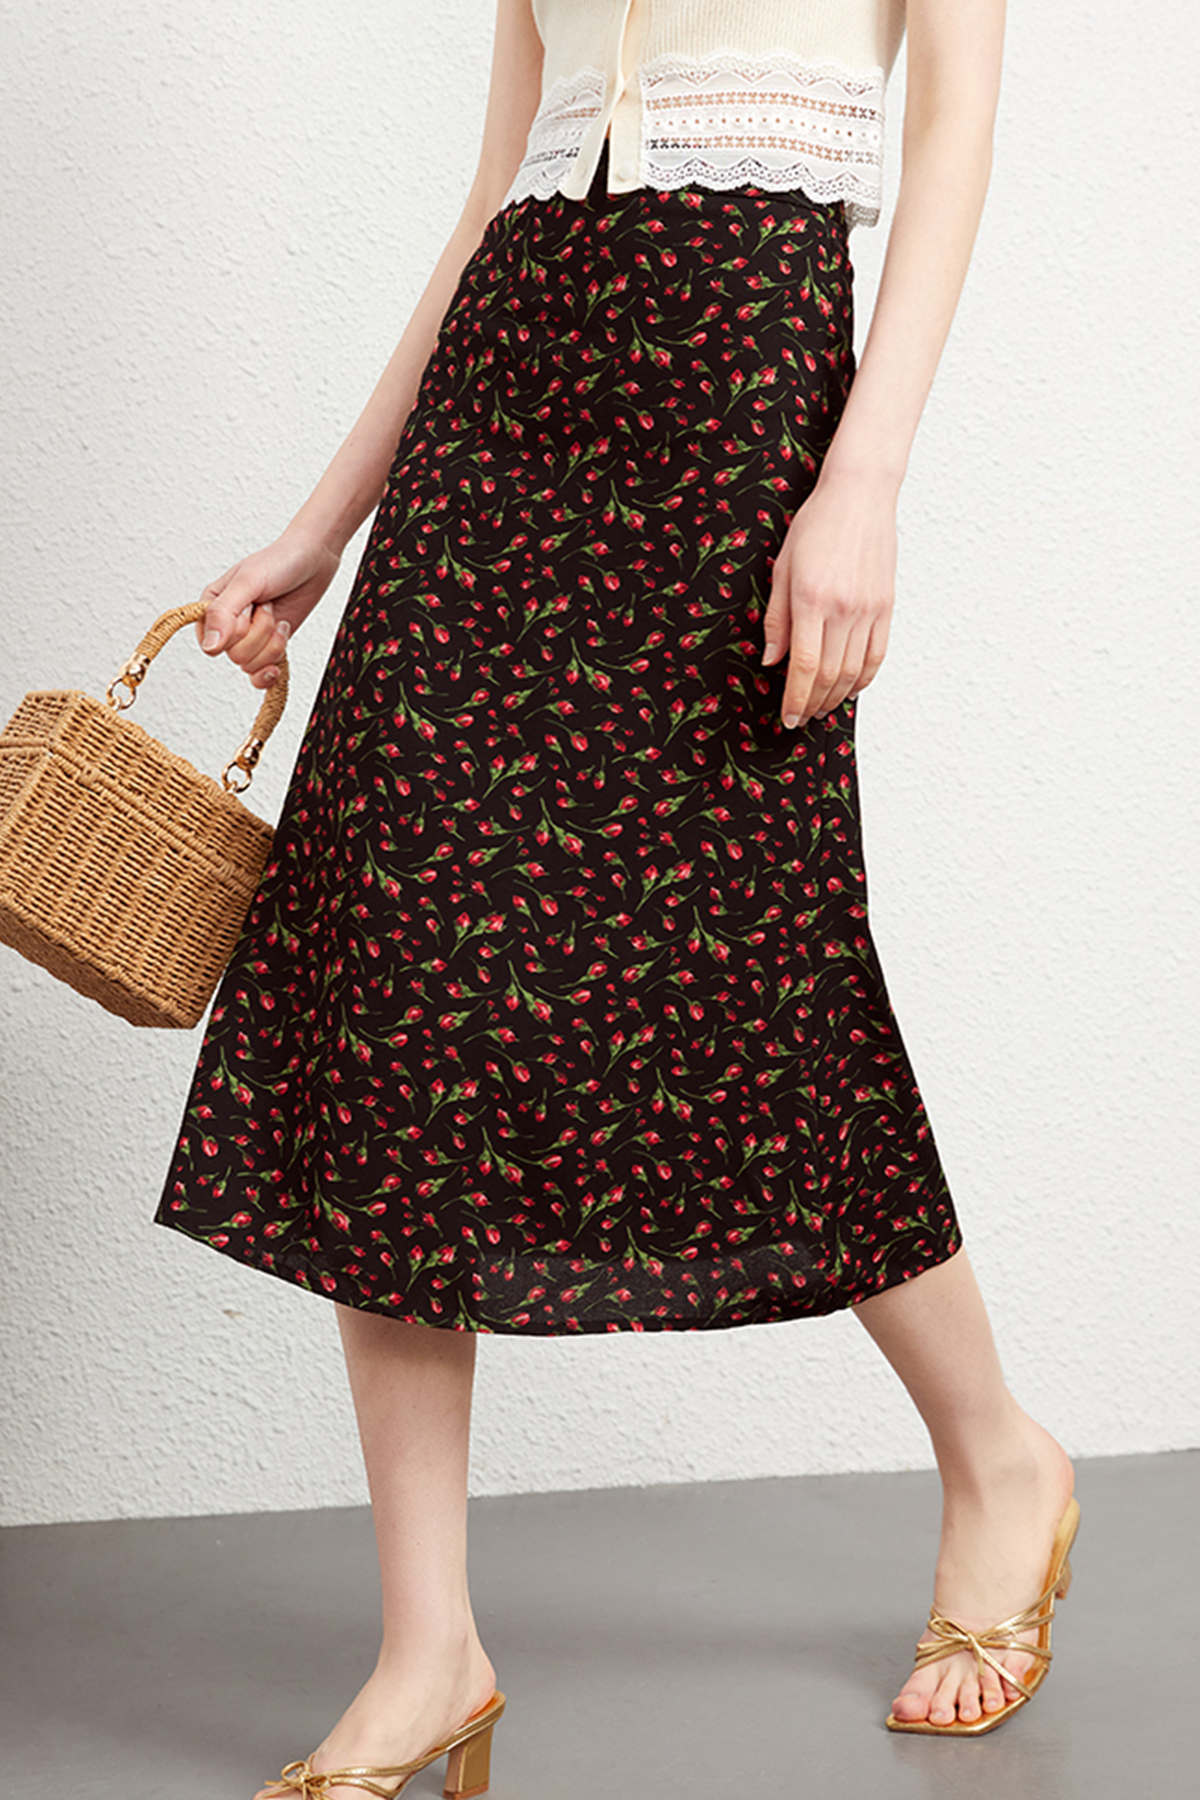 THE MOODSS Aisling Skirt-1